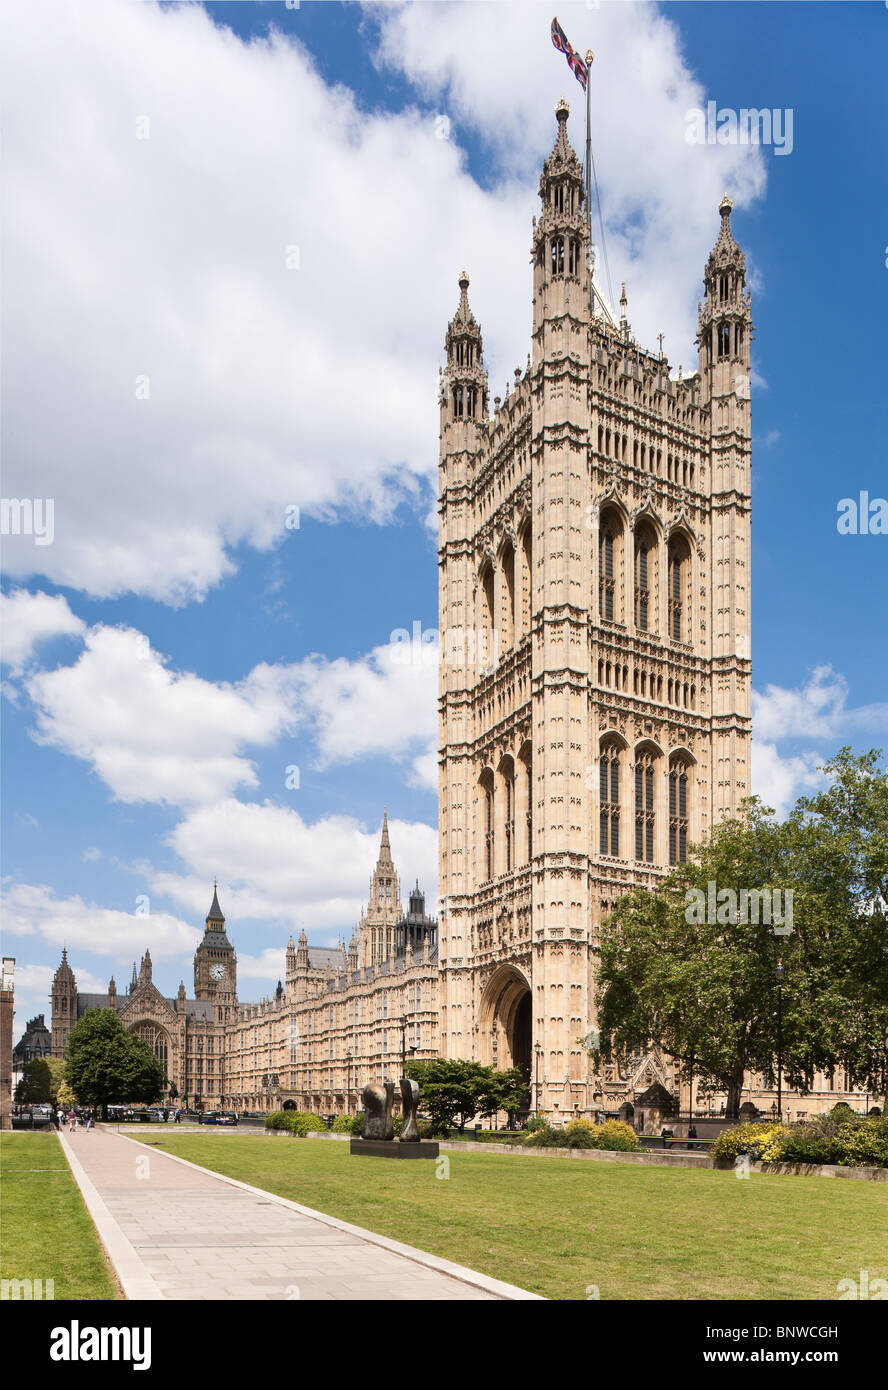 Houses of Parliament Palace of Westminster London - Stock Image